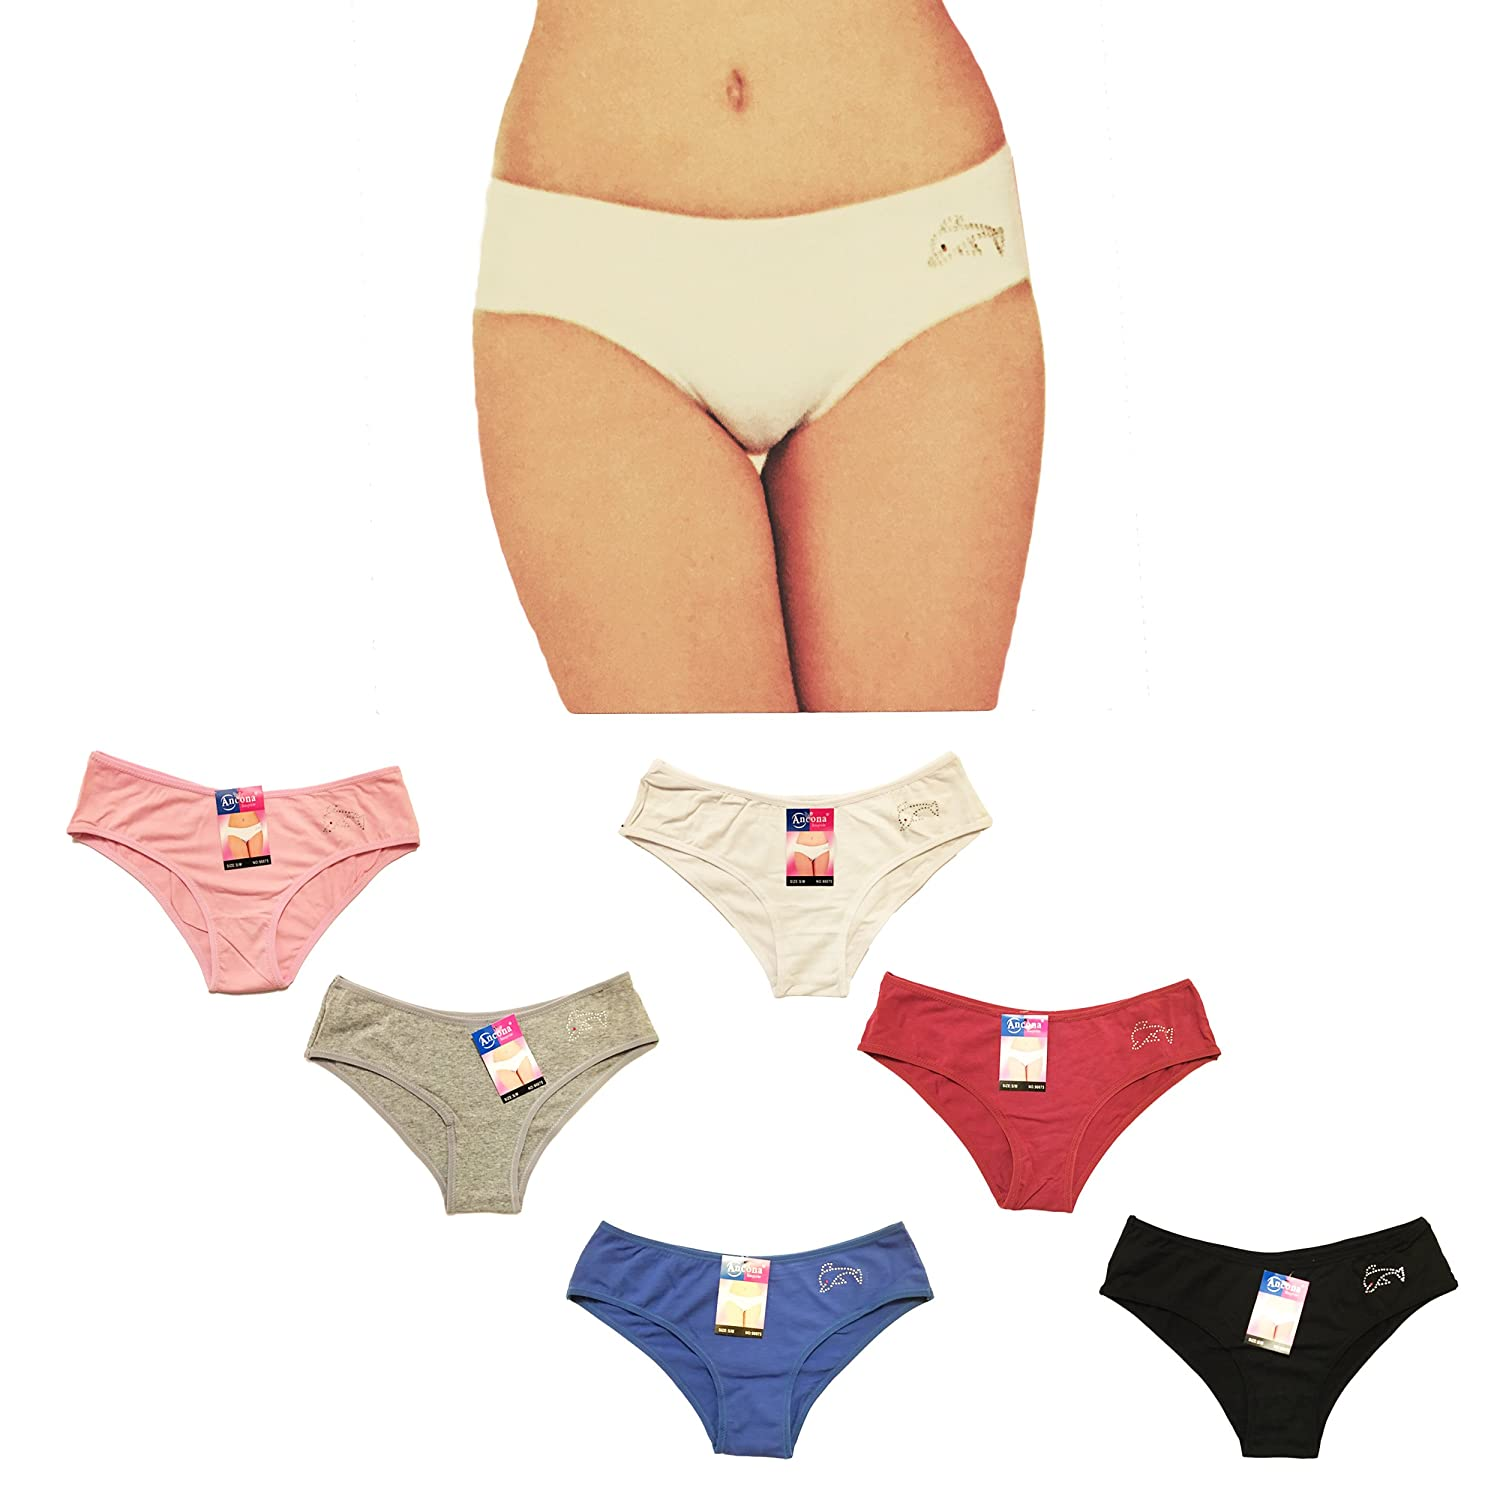 fb07dc62c You New Ladies Underwear Knickers Cotton Rich Plain Dolphin Beaded Dolphin Briefs  Panties  Amazon.co.uk  Clothing